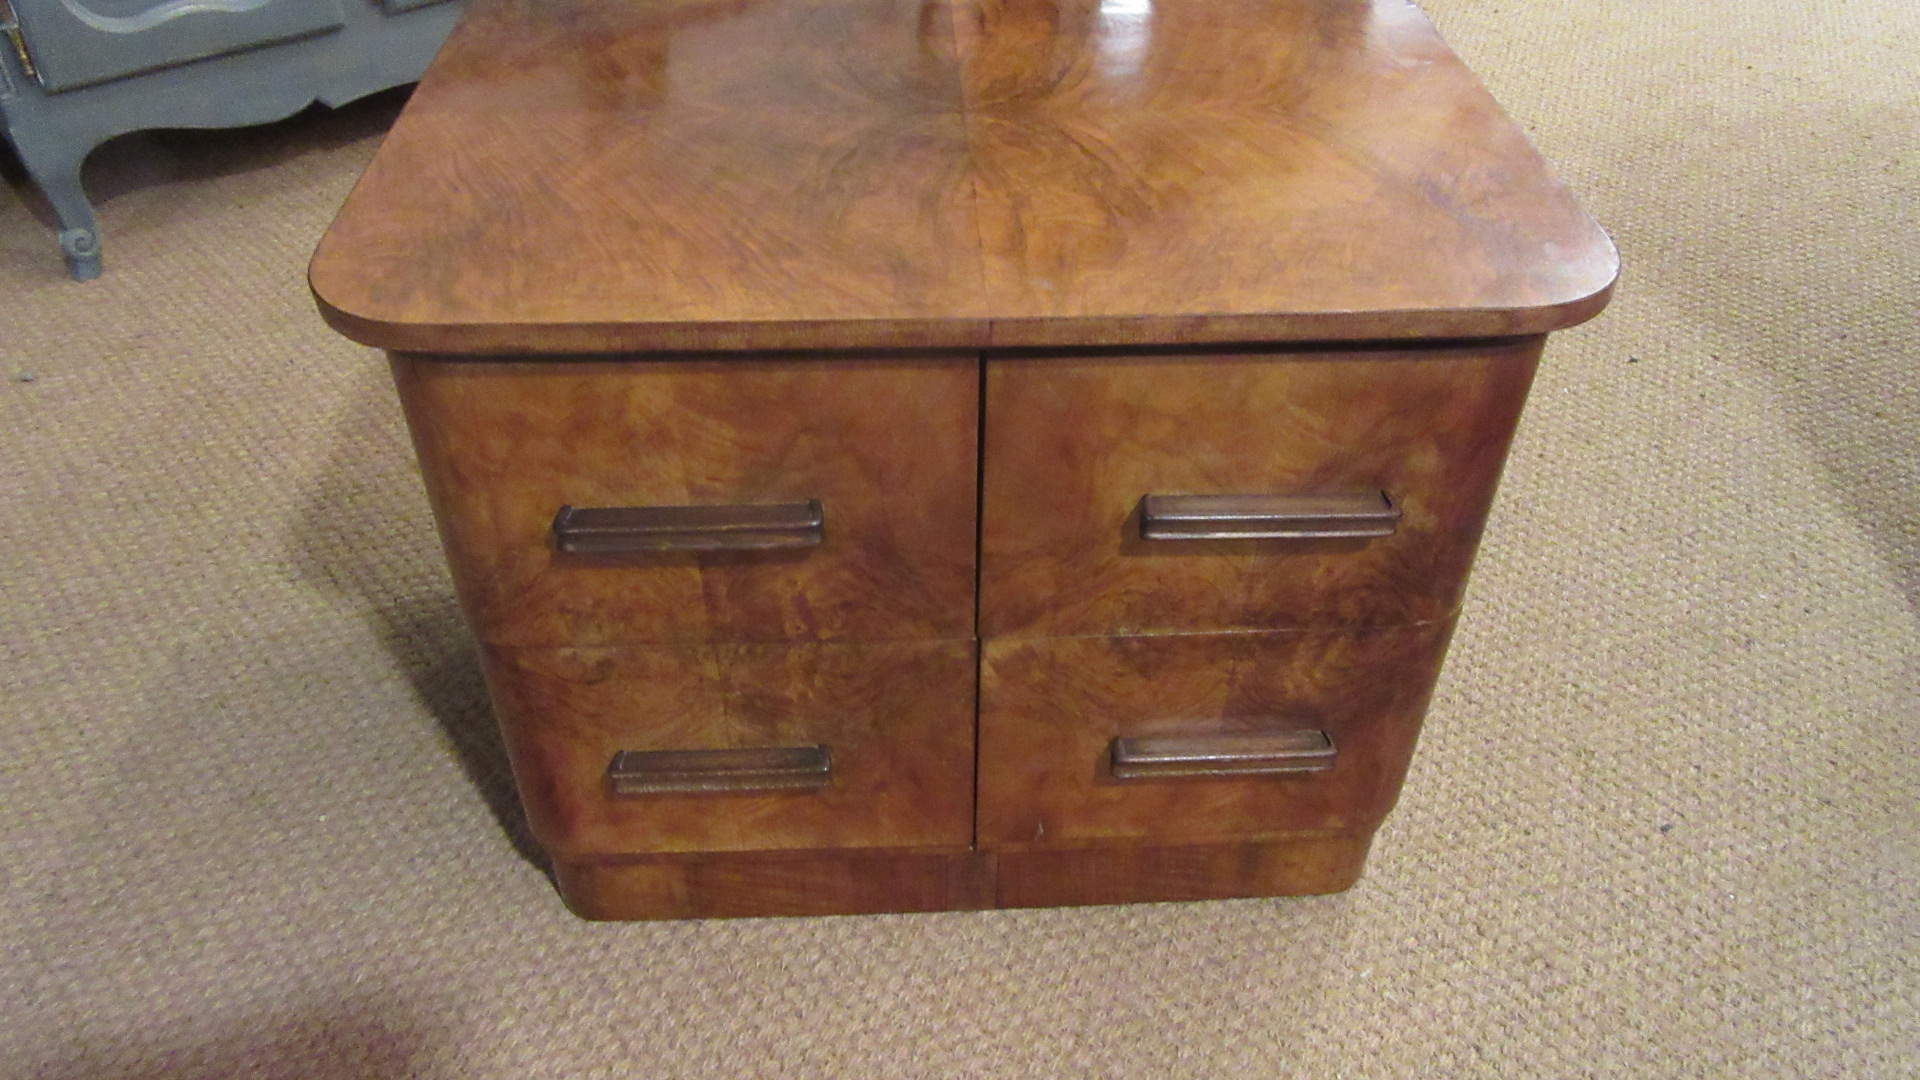 ANTIQUE ART DECO WALNUT CHEST OF DRAWERS